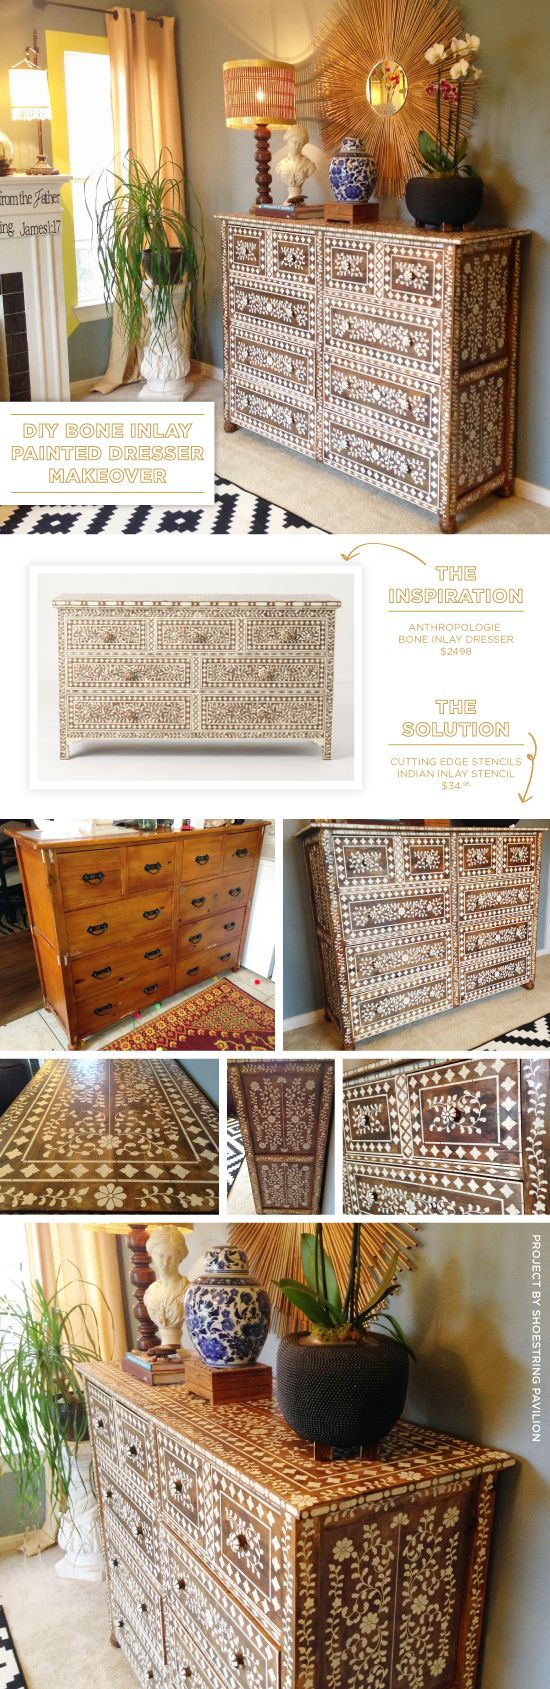 Cutting Edge Stencils shares a DIY Anthropogolie inspired bone inlay stenciled dresser using the Indian Inlay Stencil Kit. >>  http://www.cuttingedgestencils.com/indian-inlay-stencil-furniture.html?utm_source=JCG&utm_medium=Pinterest%20Comment&utm_campaign=Indian%20Inlay%20Furniture%20Stencil%20Kit%20